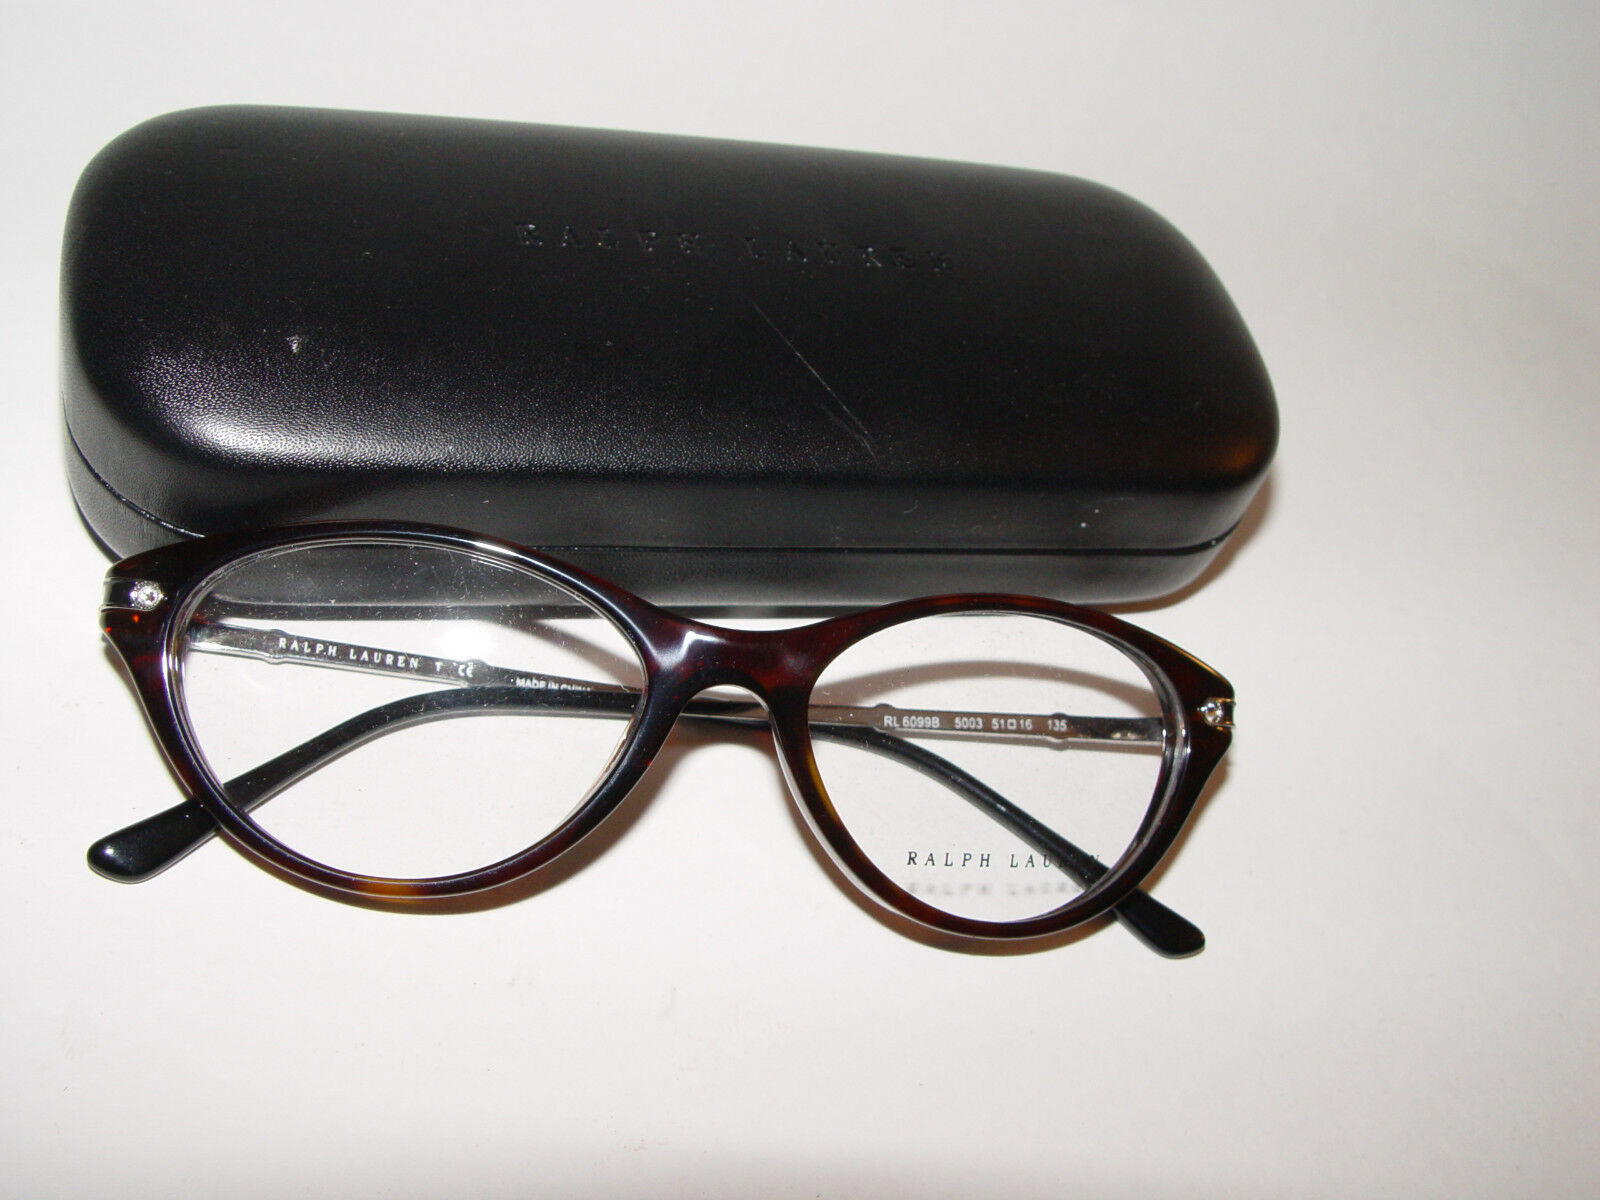 NEW Ralph Lauren RL 6099B Dark Havana 5003 Crystals FRAME EYEGLASSES 51mm 16 135